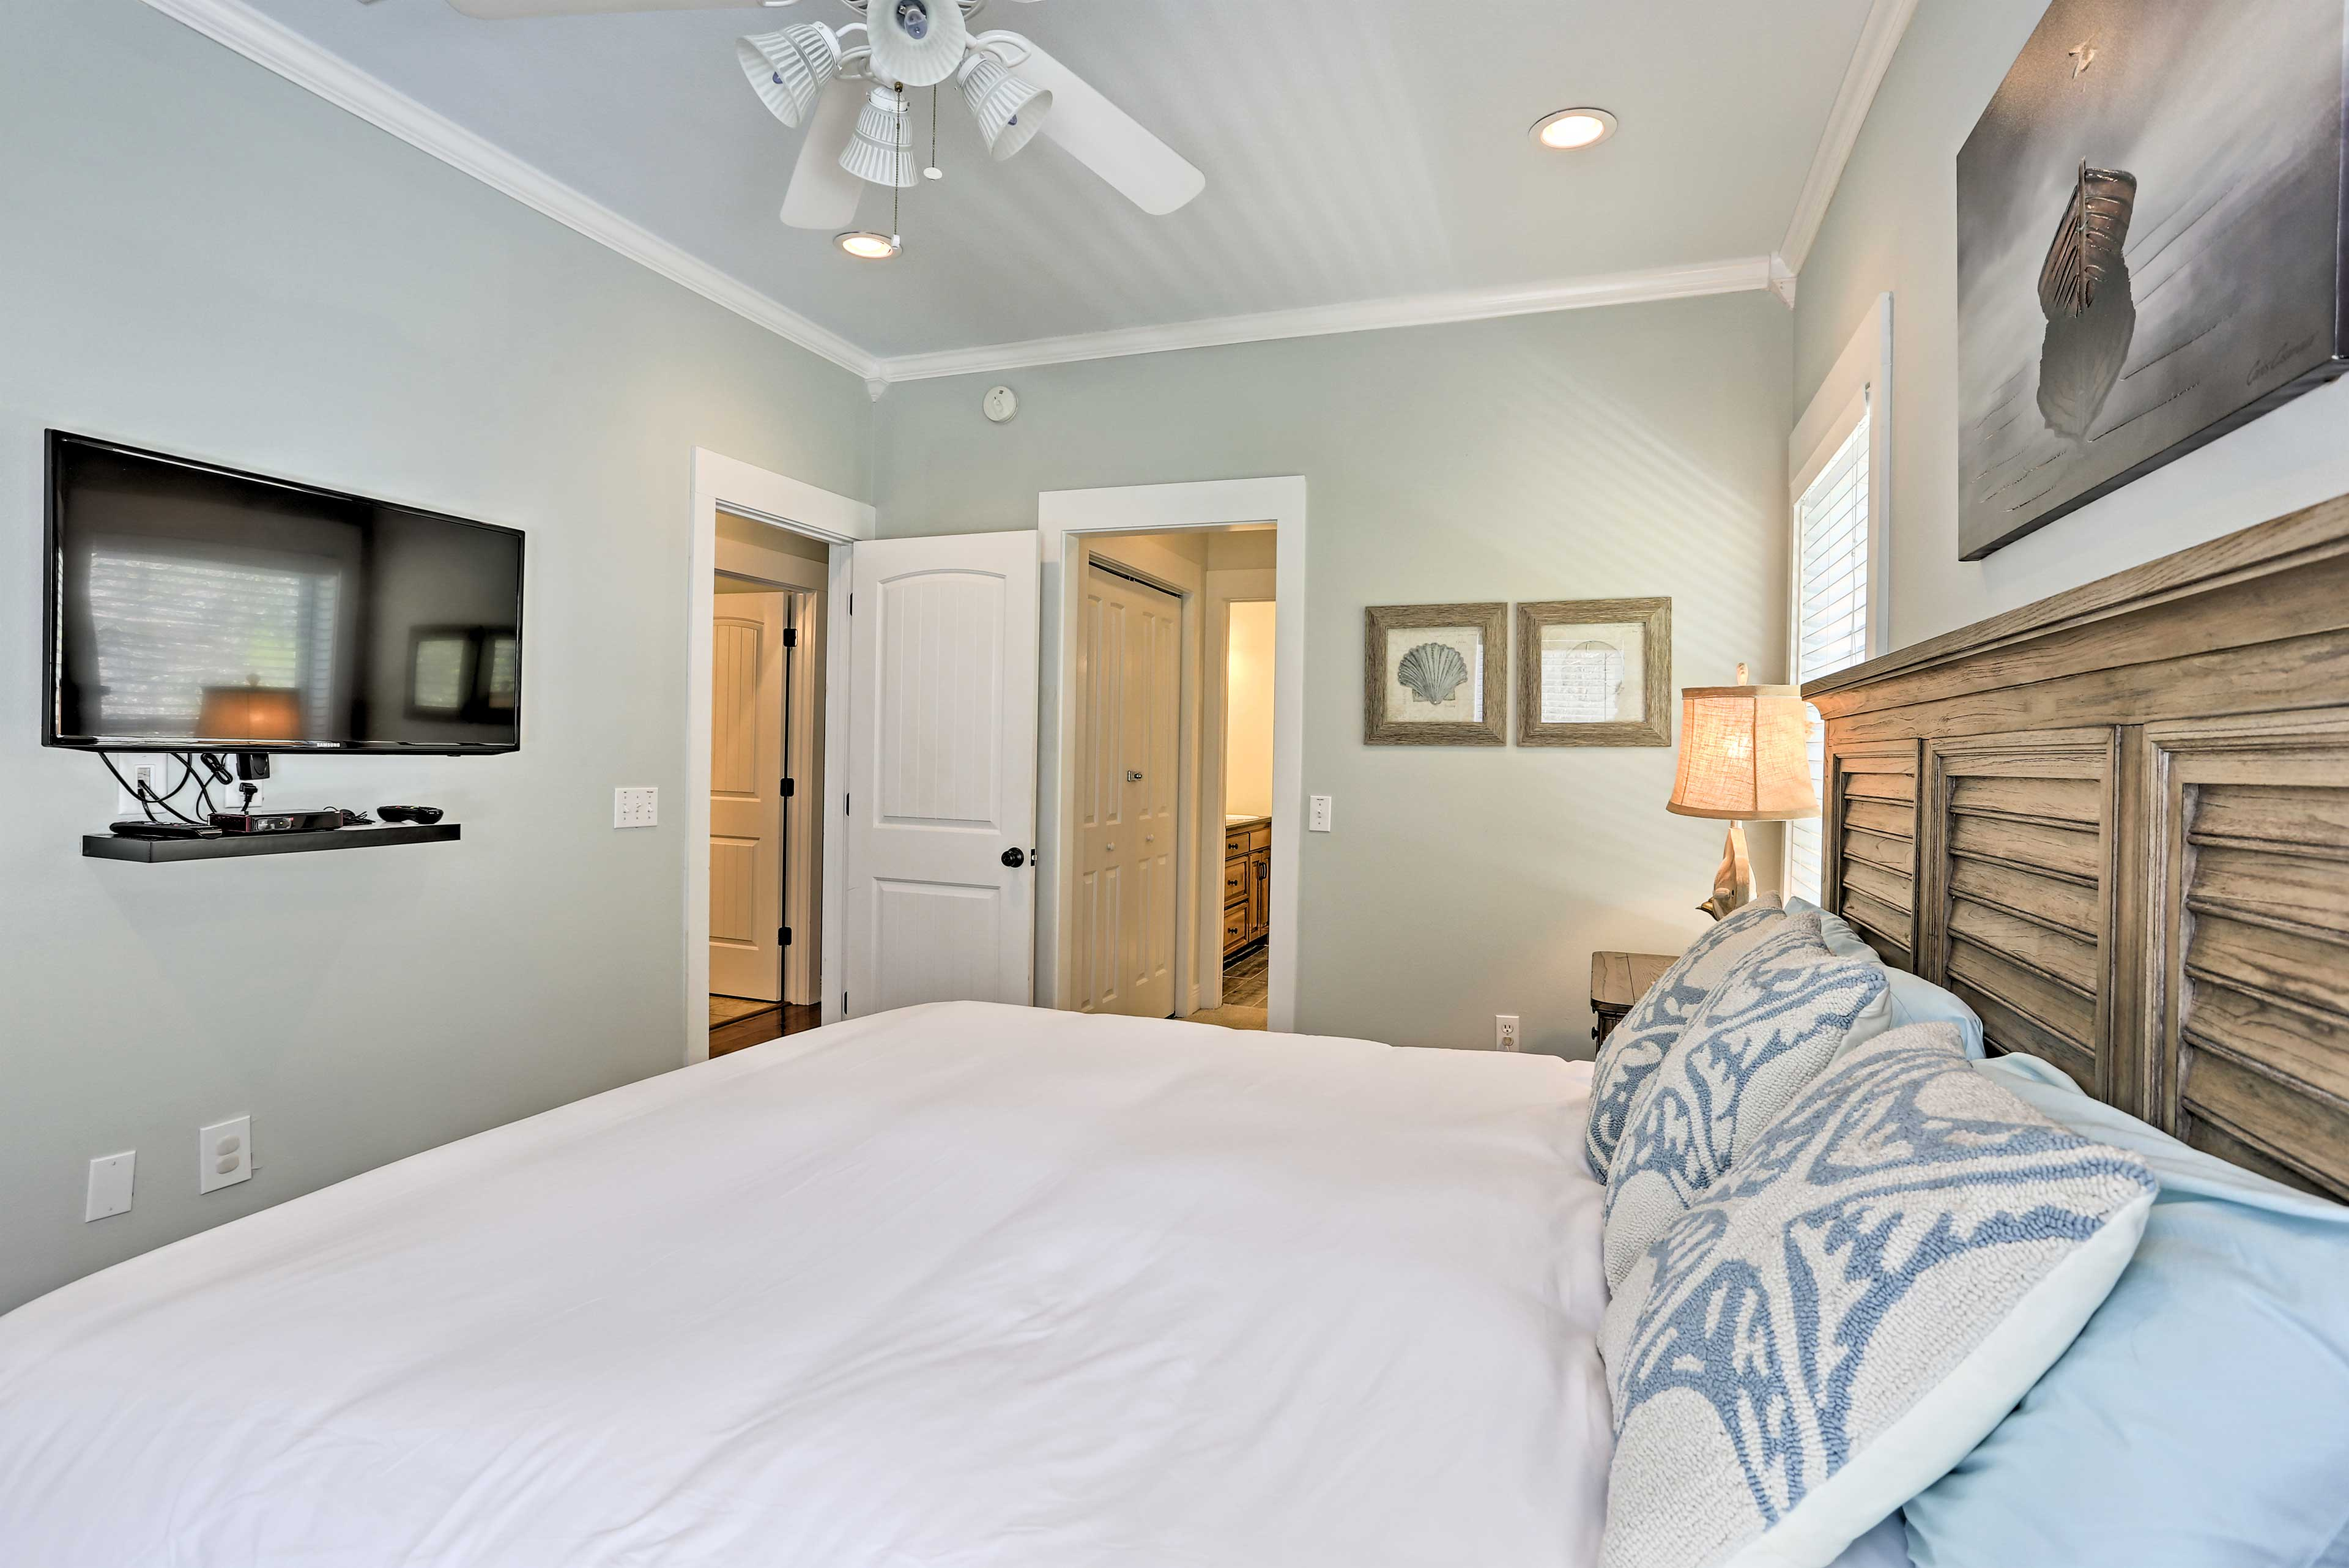 All 3 bedrooms also contain flat-screen cable TVs.